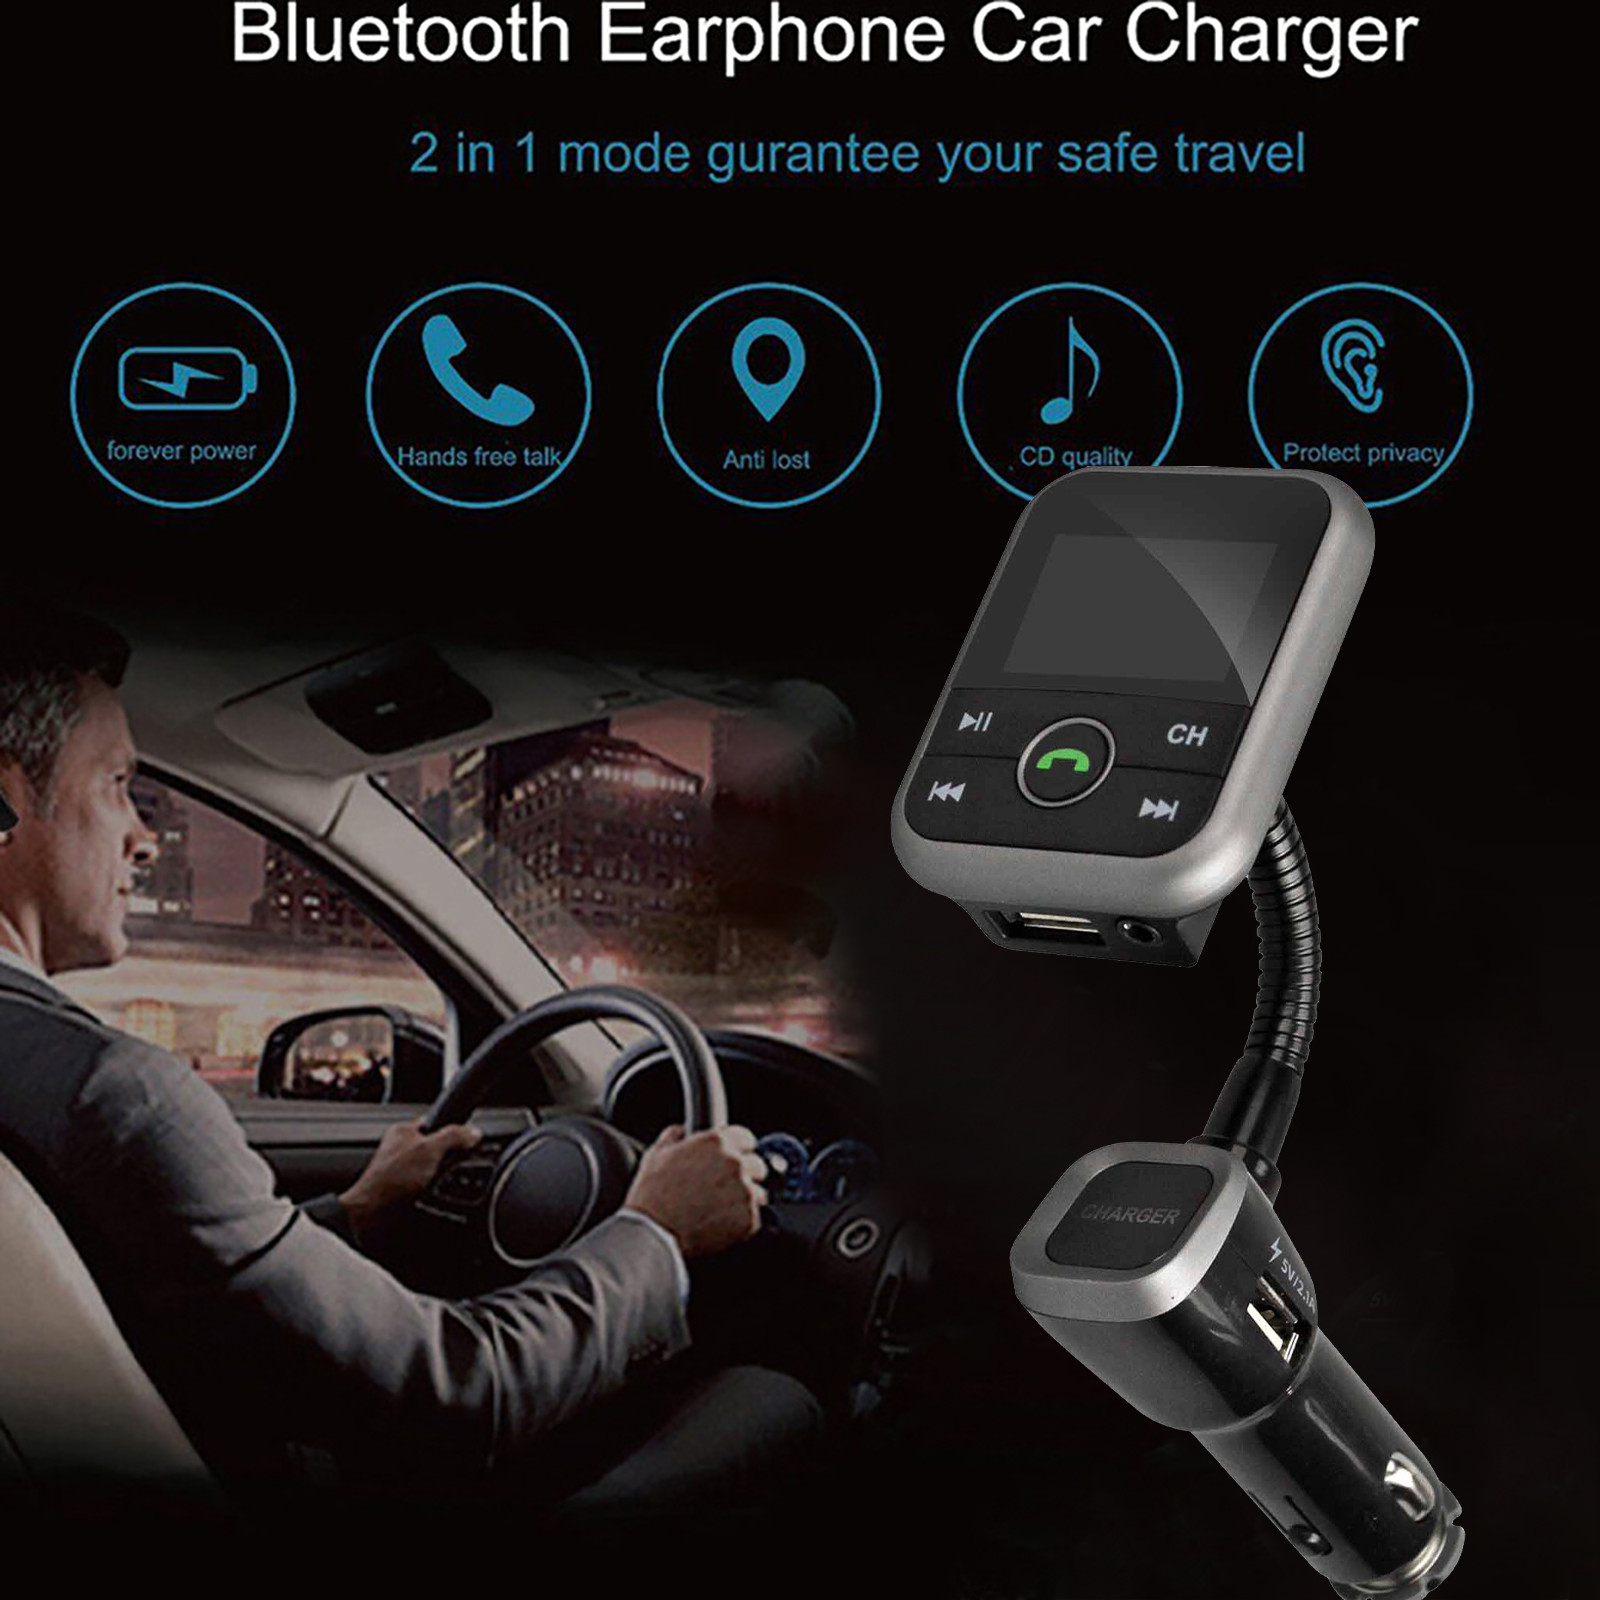 BT67 Bluetooth Handsfree Car Kit With FM Transmitter And 2USB  5V 2.1A Charger Mp3 play Aux In  SD Card  For IOS Android Phone